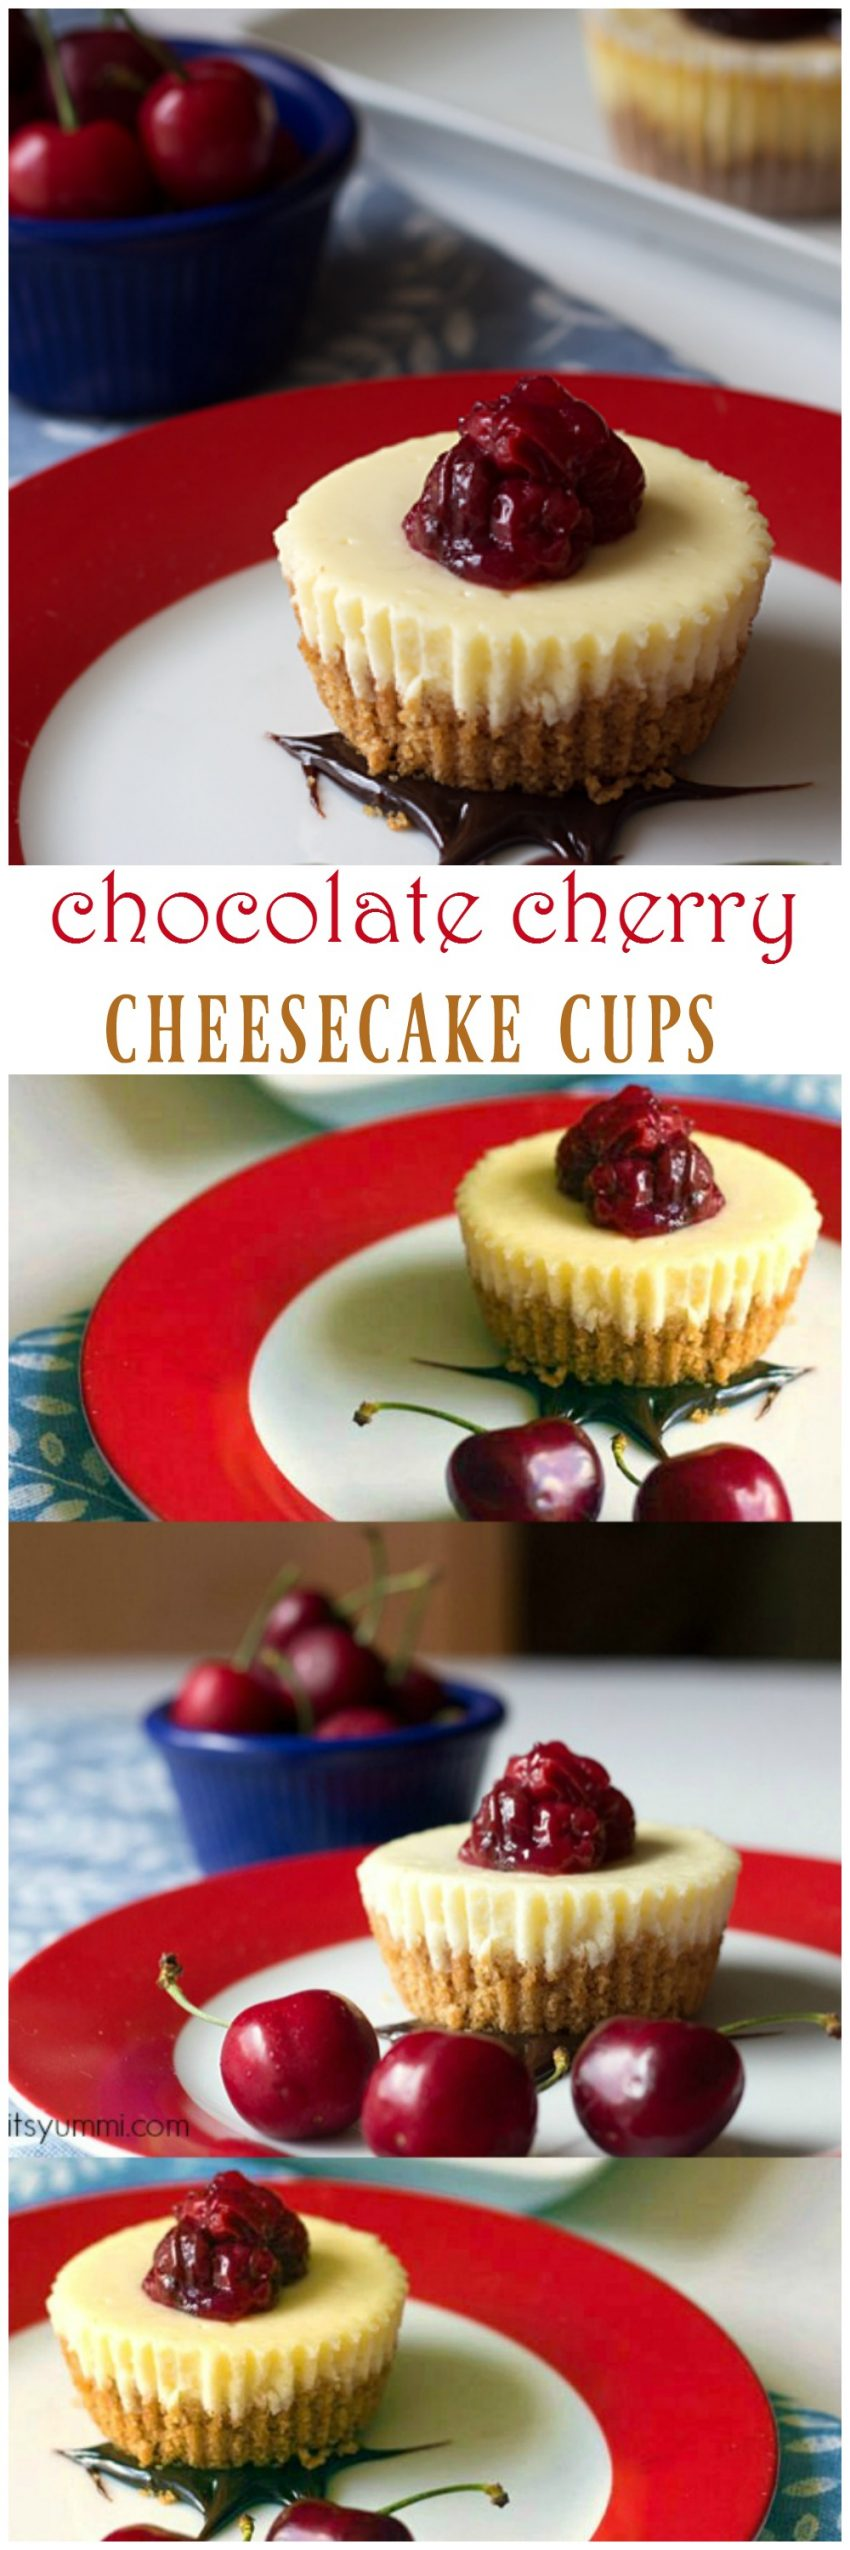 Chocolate Cherry Single Serving Cheesecake Recipe - Perfect portion control! Get the recipe from itsyummi.com